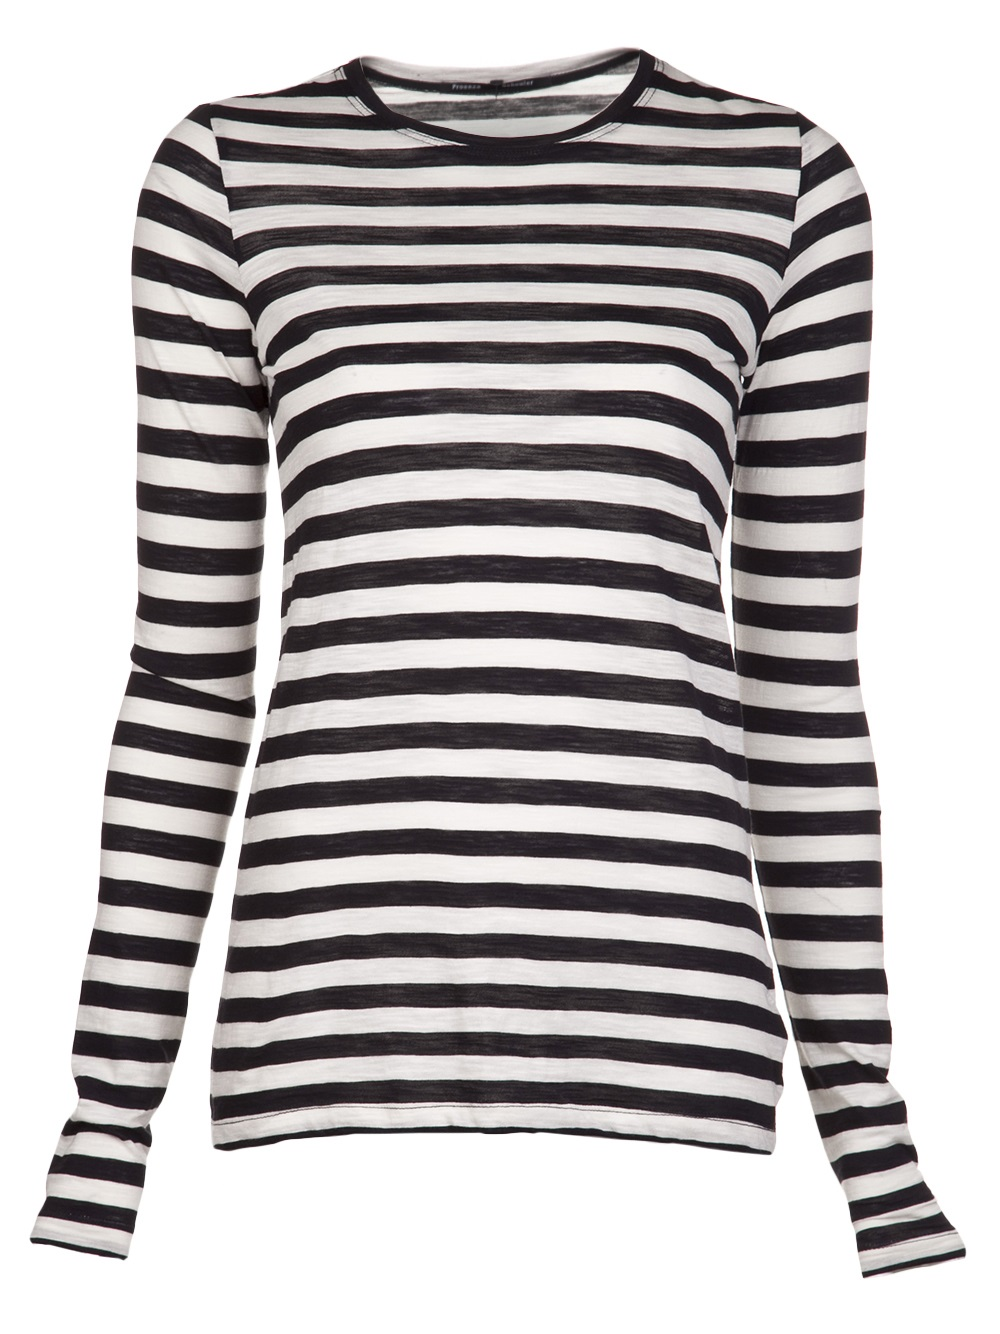 Black And Gray Striped Long Sleeve Shirt